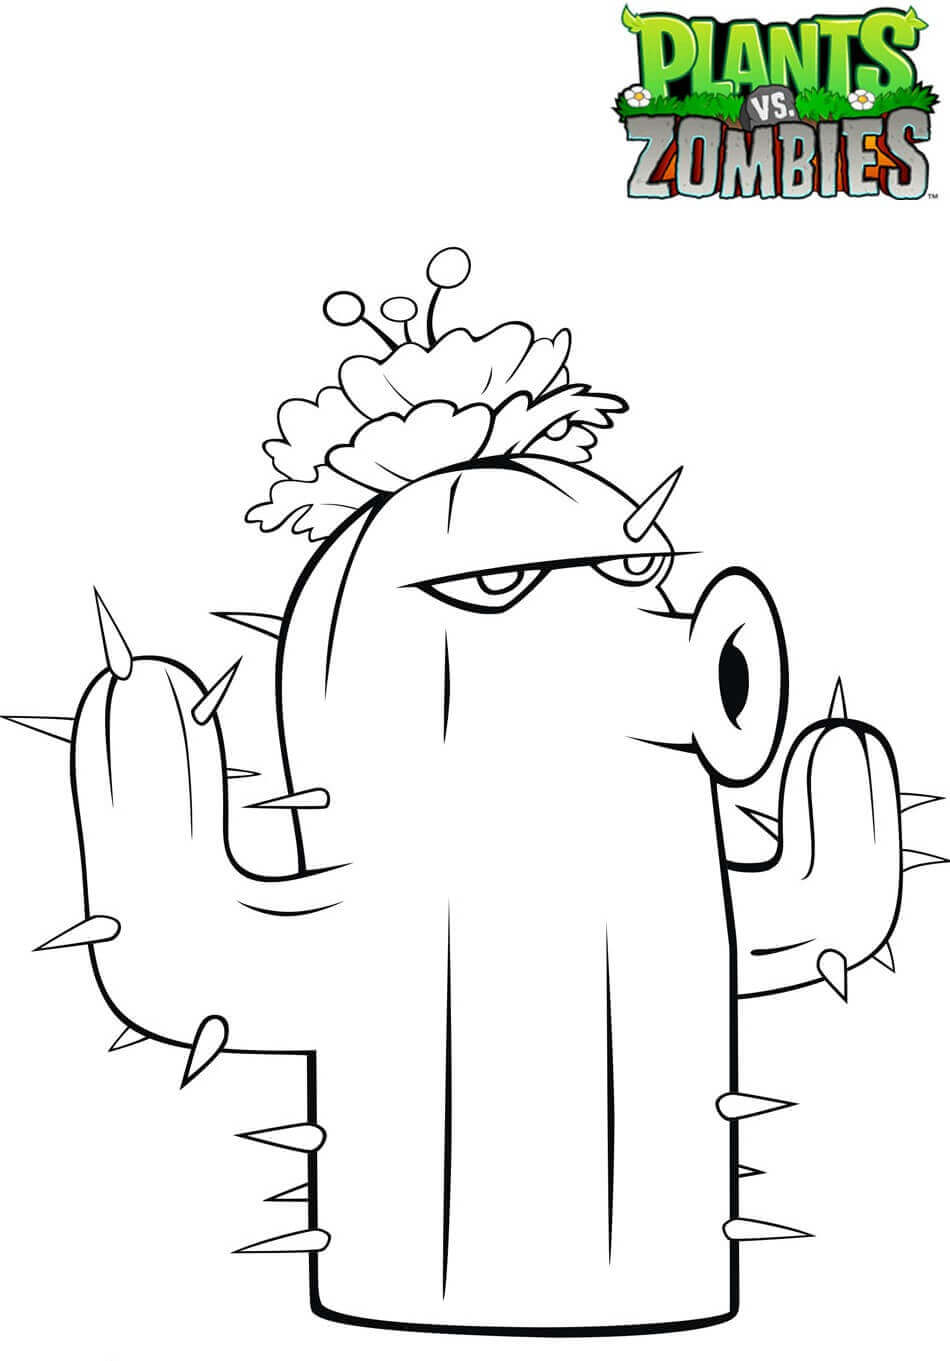 Plants vs Zombies Coloring Pages Cactus